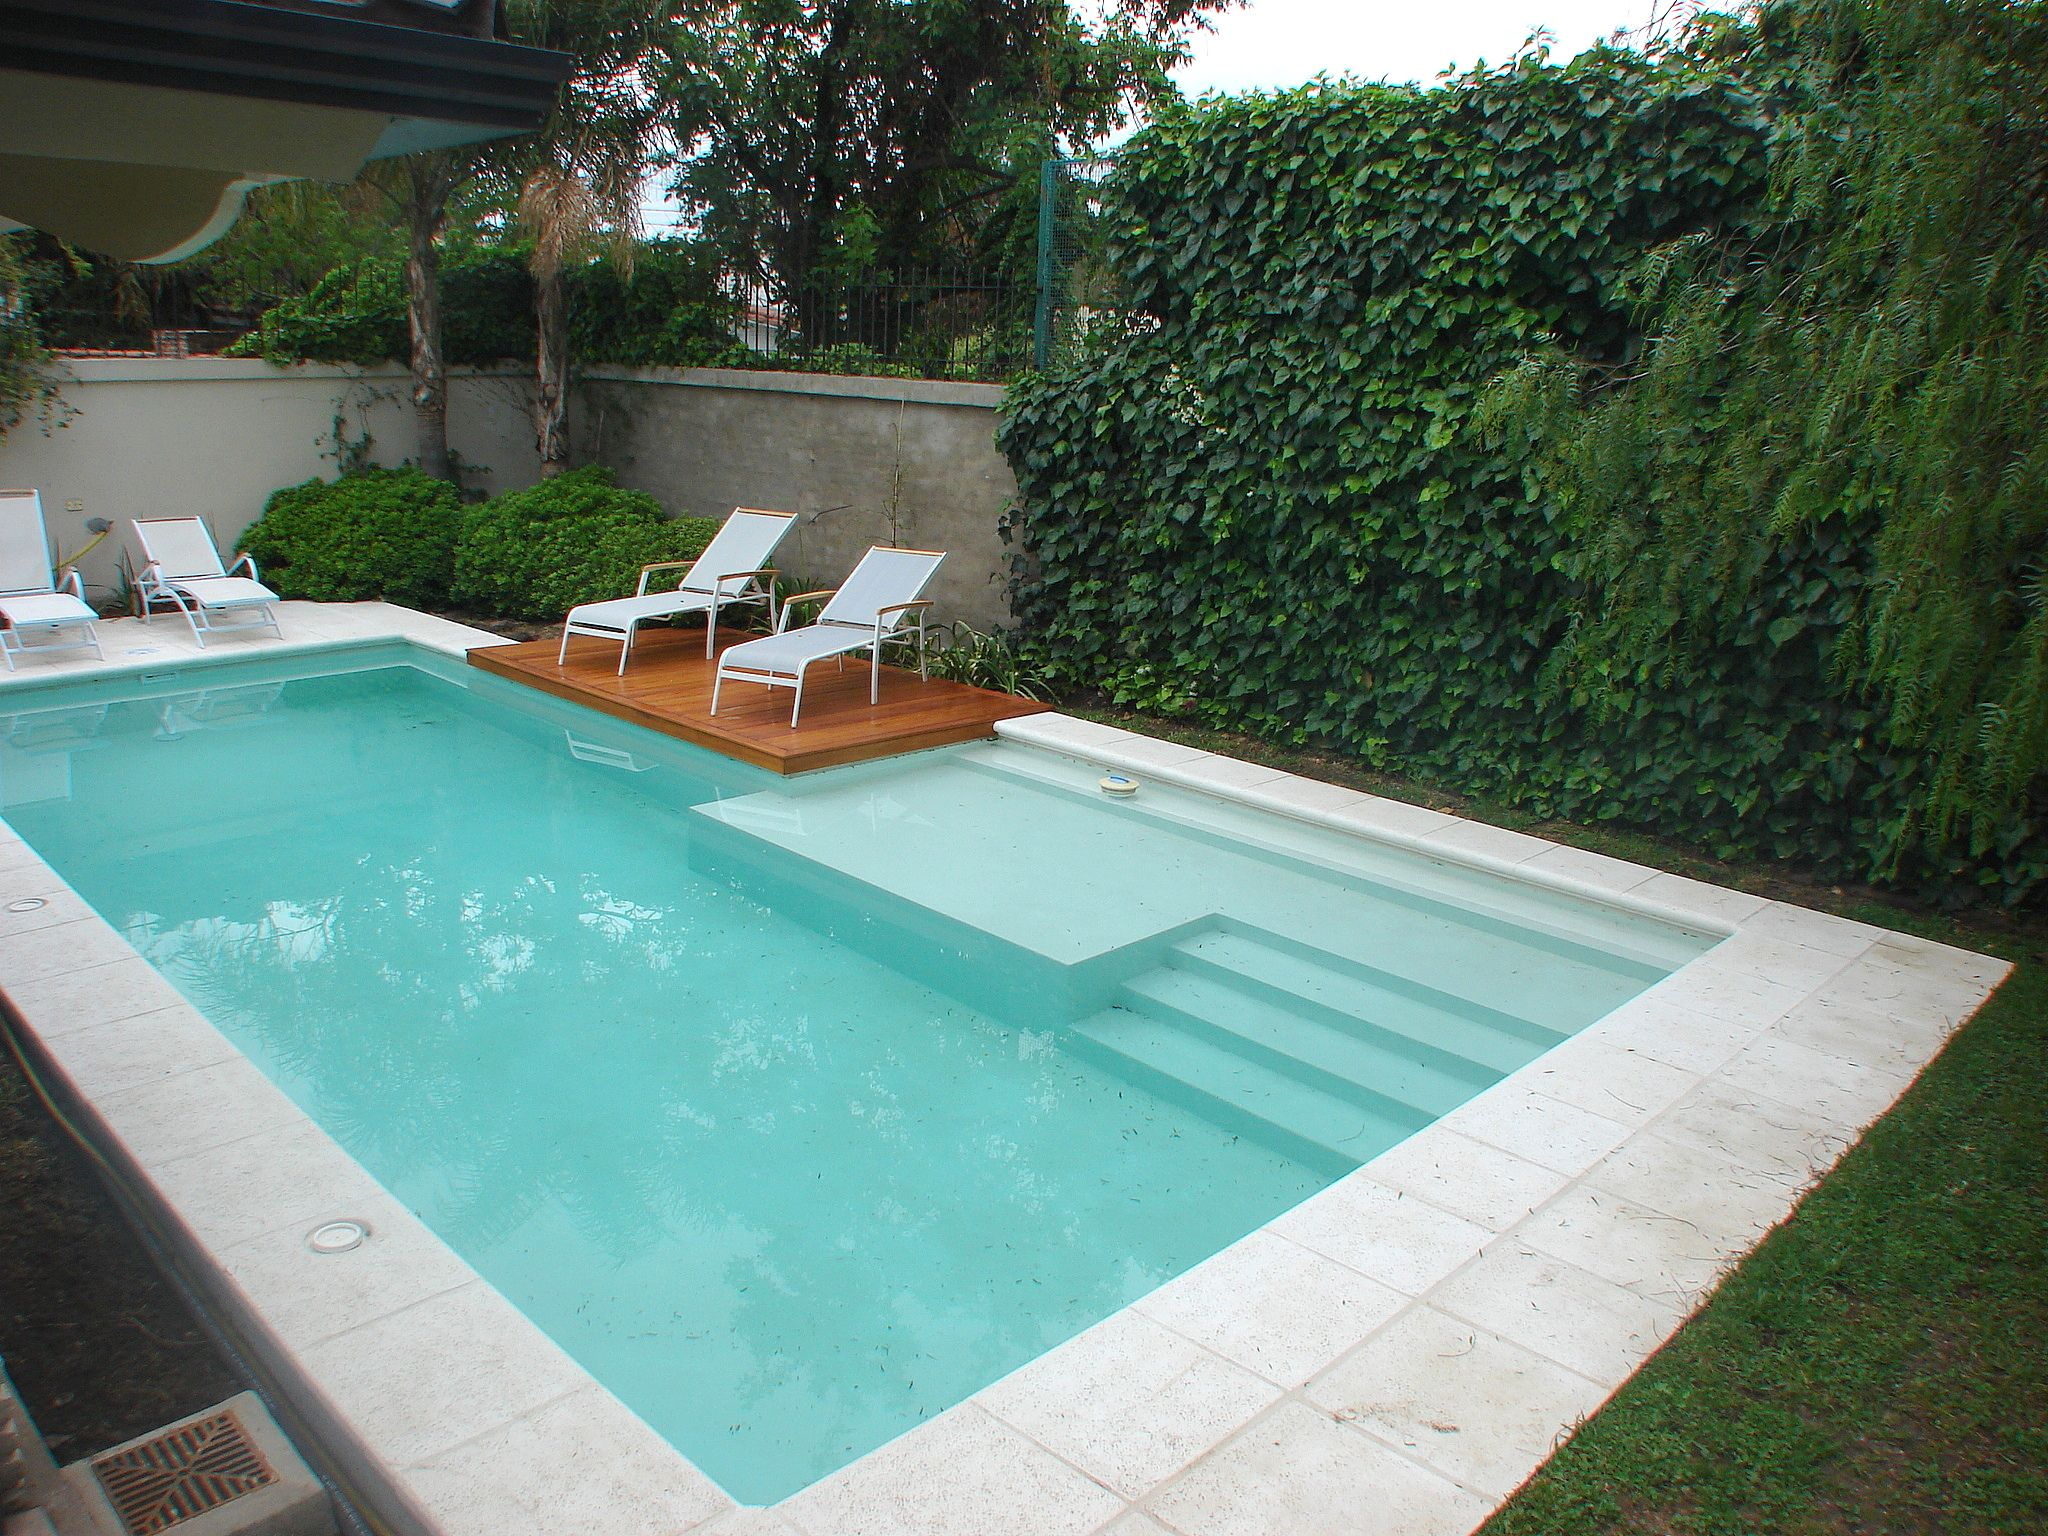 Piscina familiar swimmingpool deck de madera for Piletas construccion precios